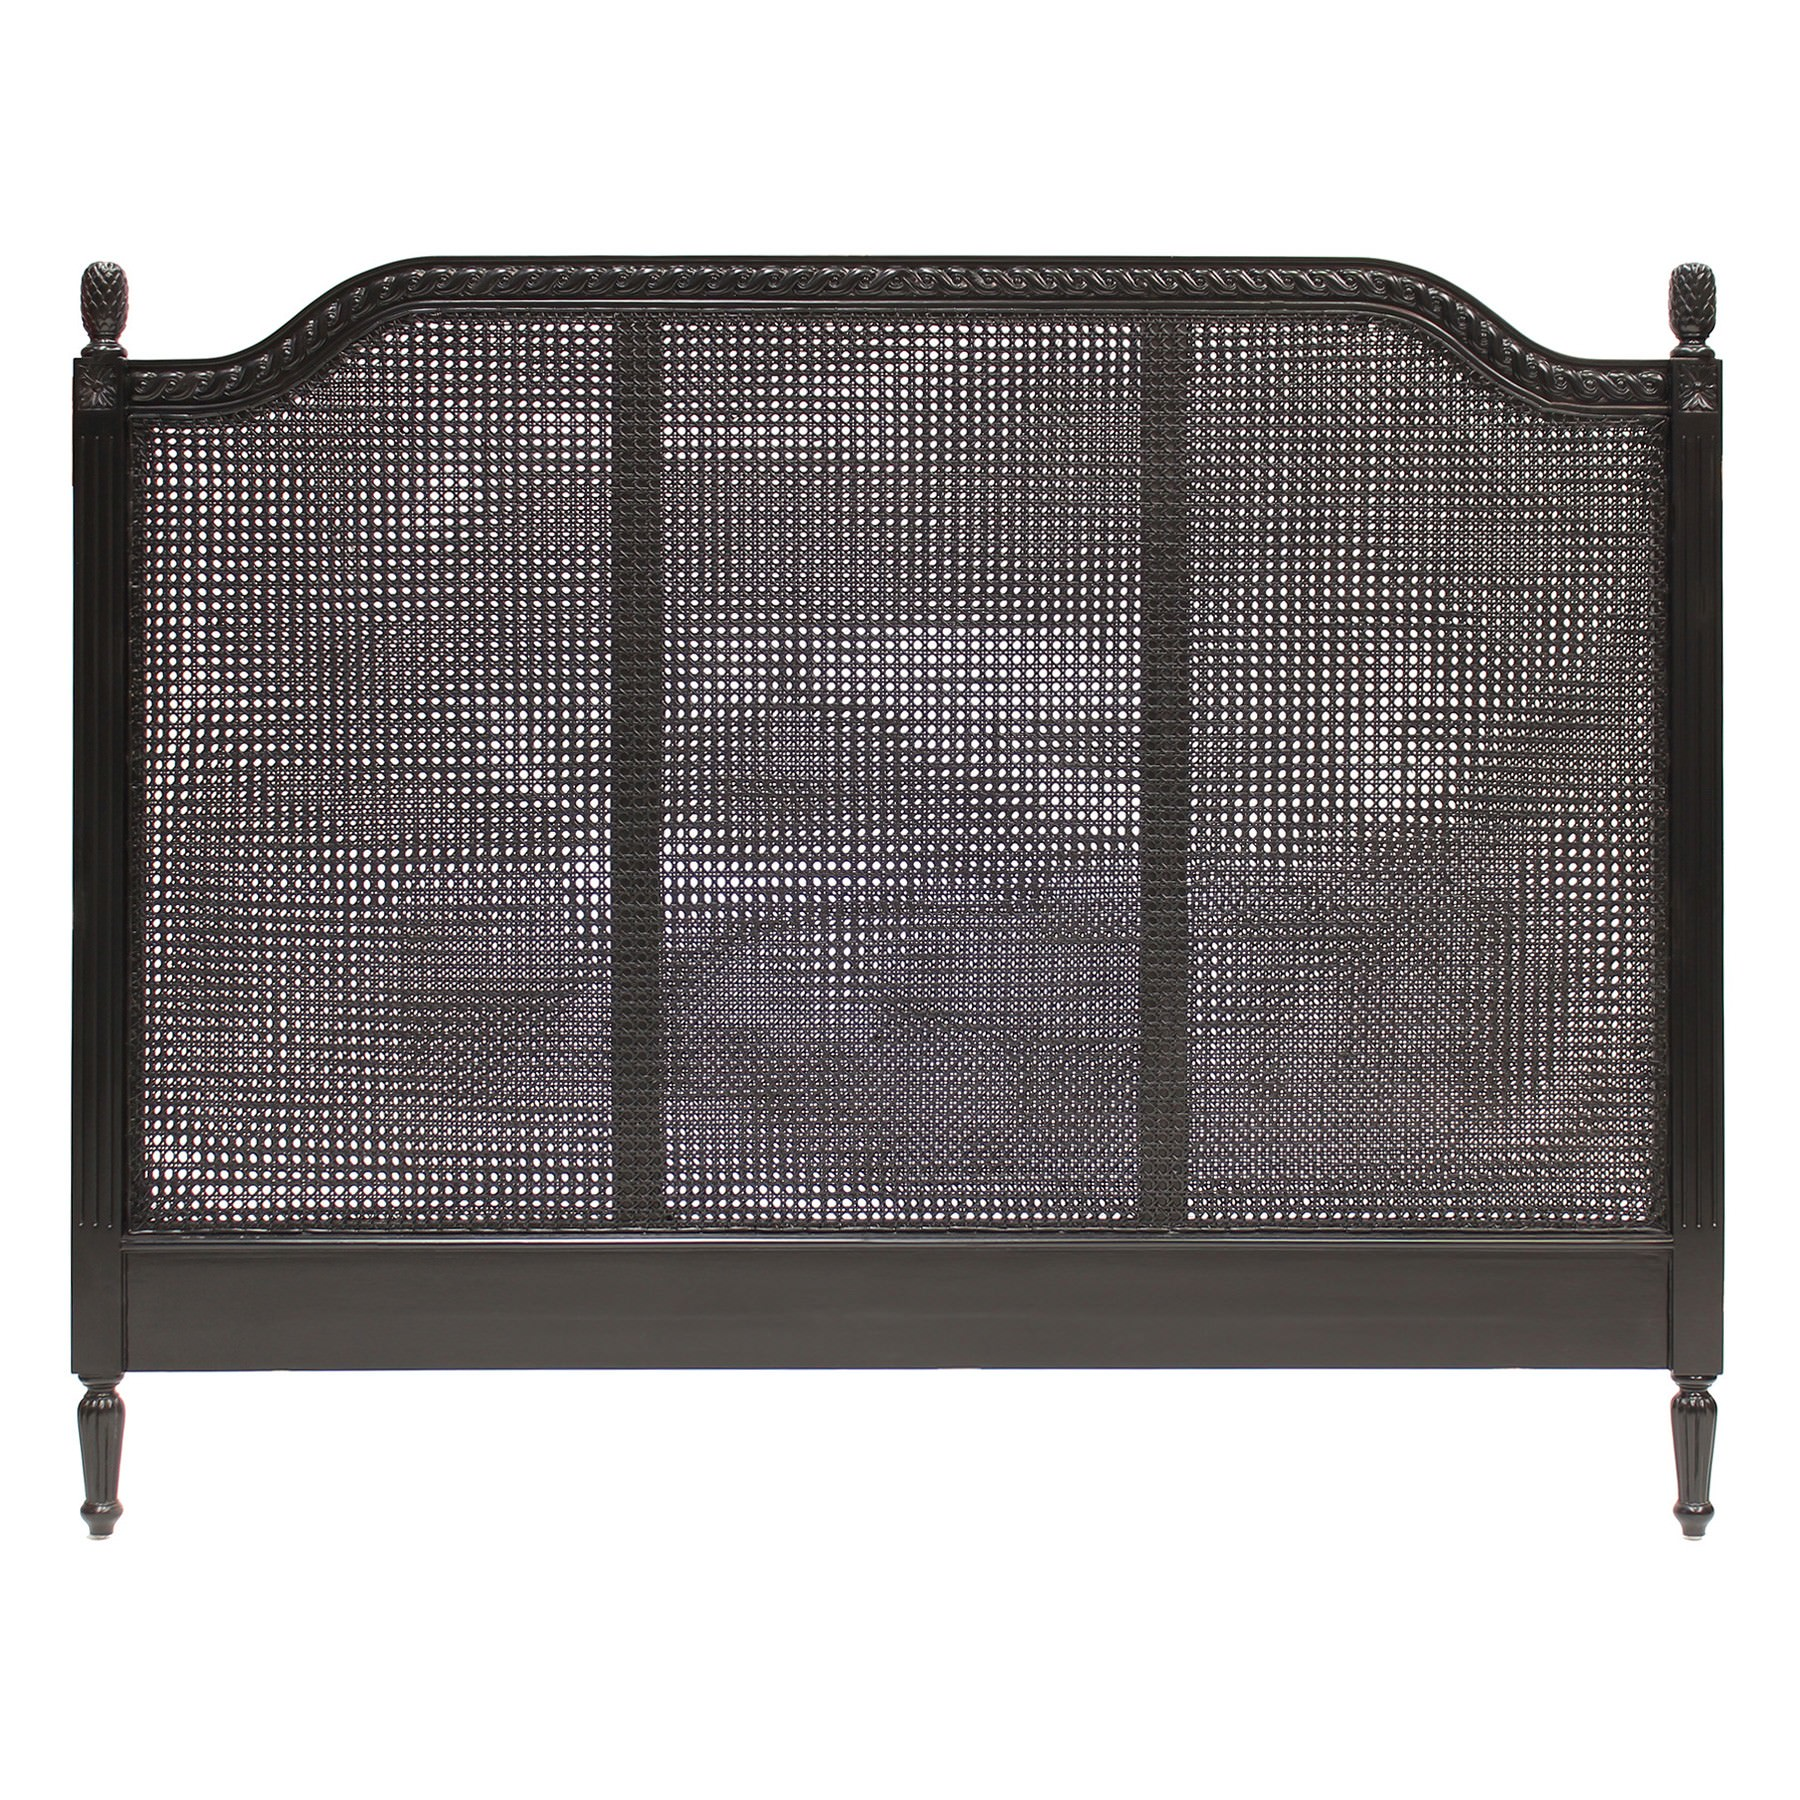 Lapalisse Hand Crafted Mahogany Timber & Rattan Bed Headboard, King, Black